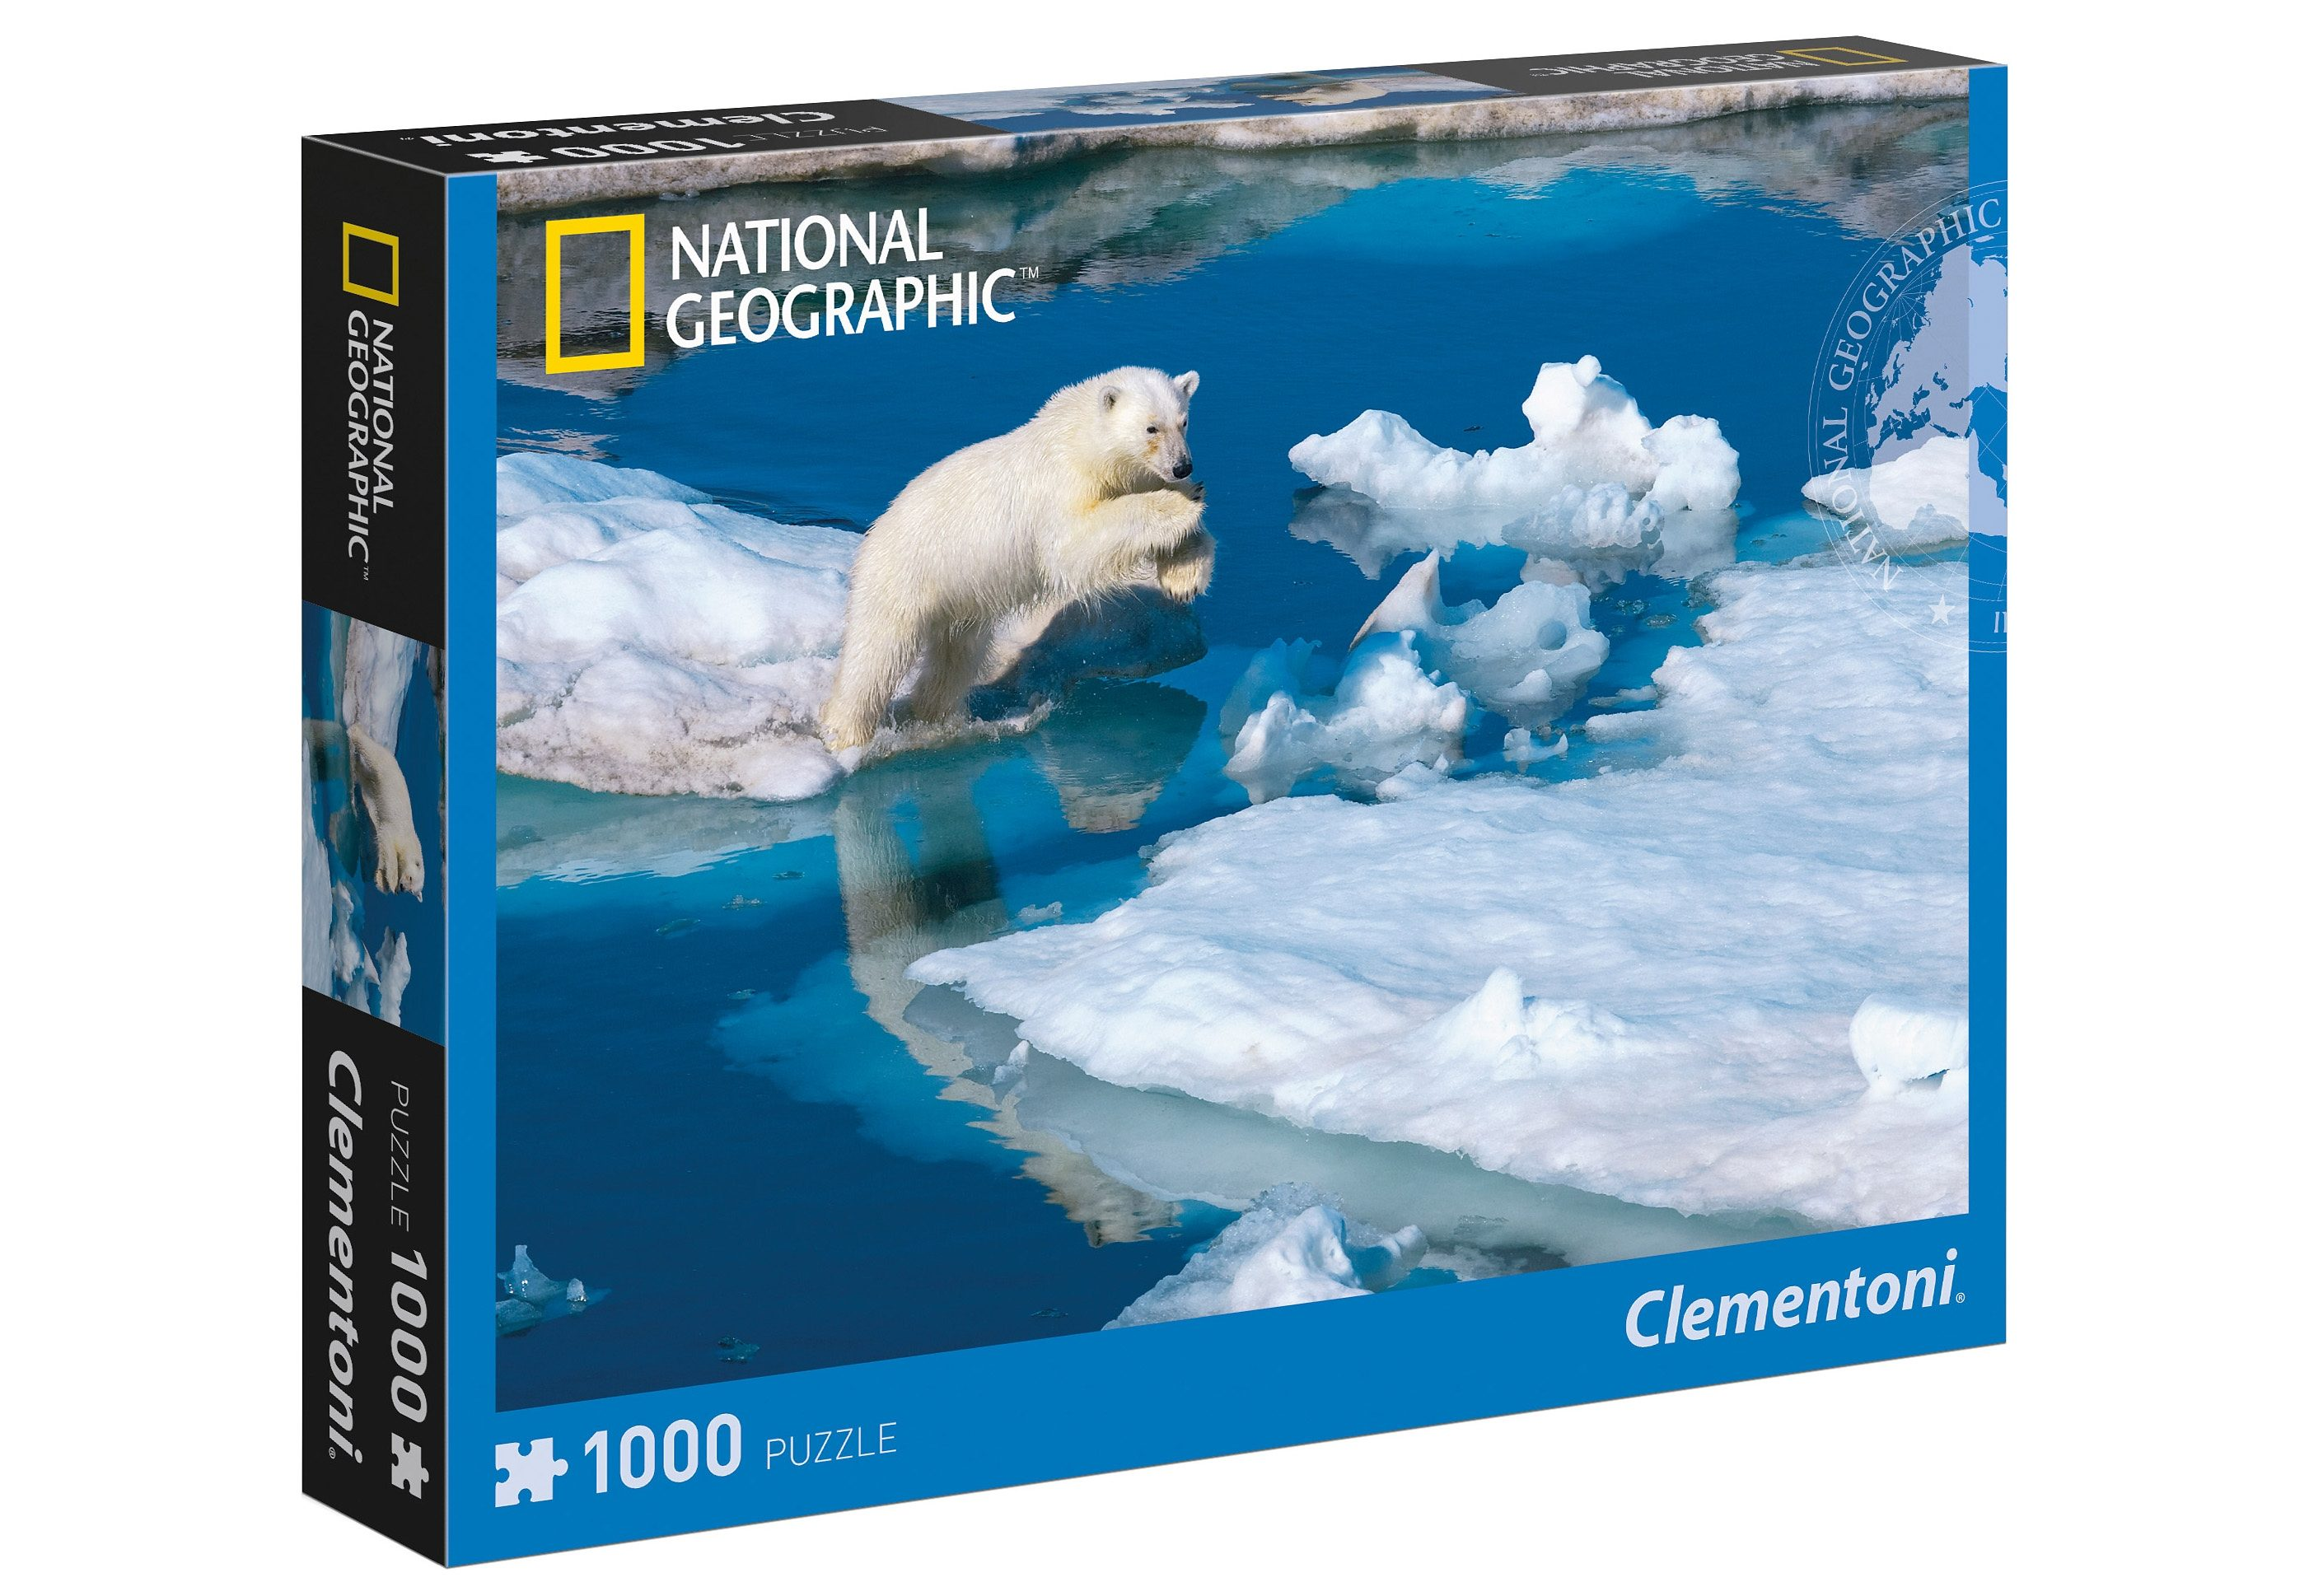 Clementoni Puzzle, 1000 Teile, »National Geographic - Polarbär«